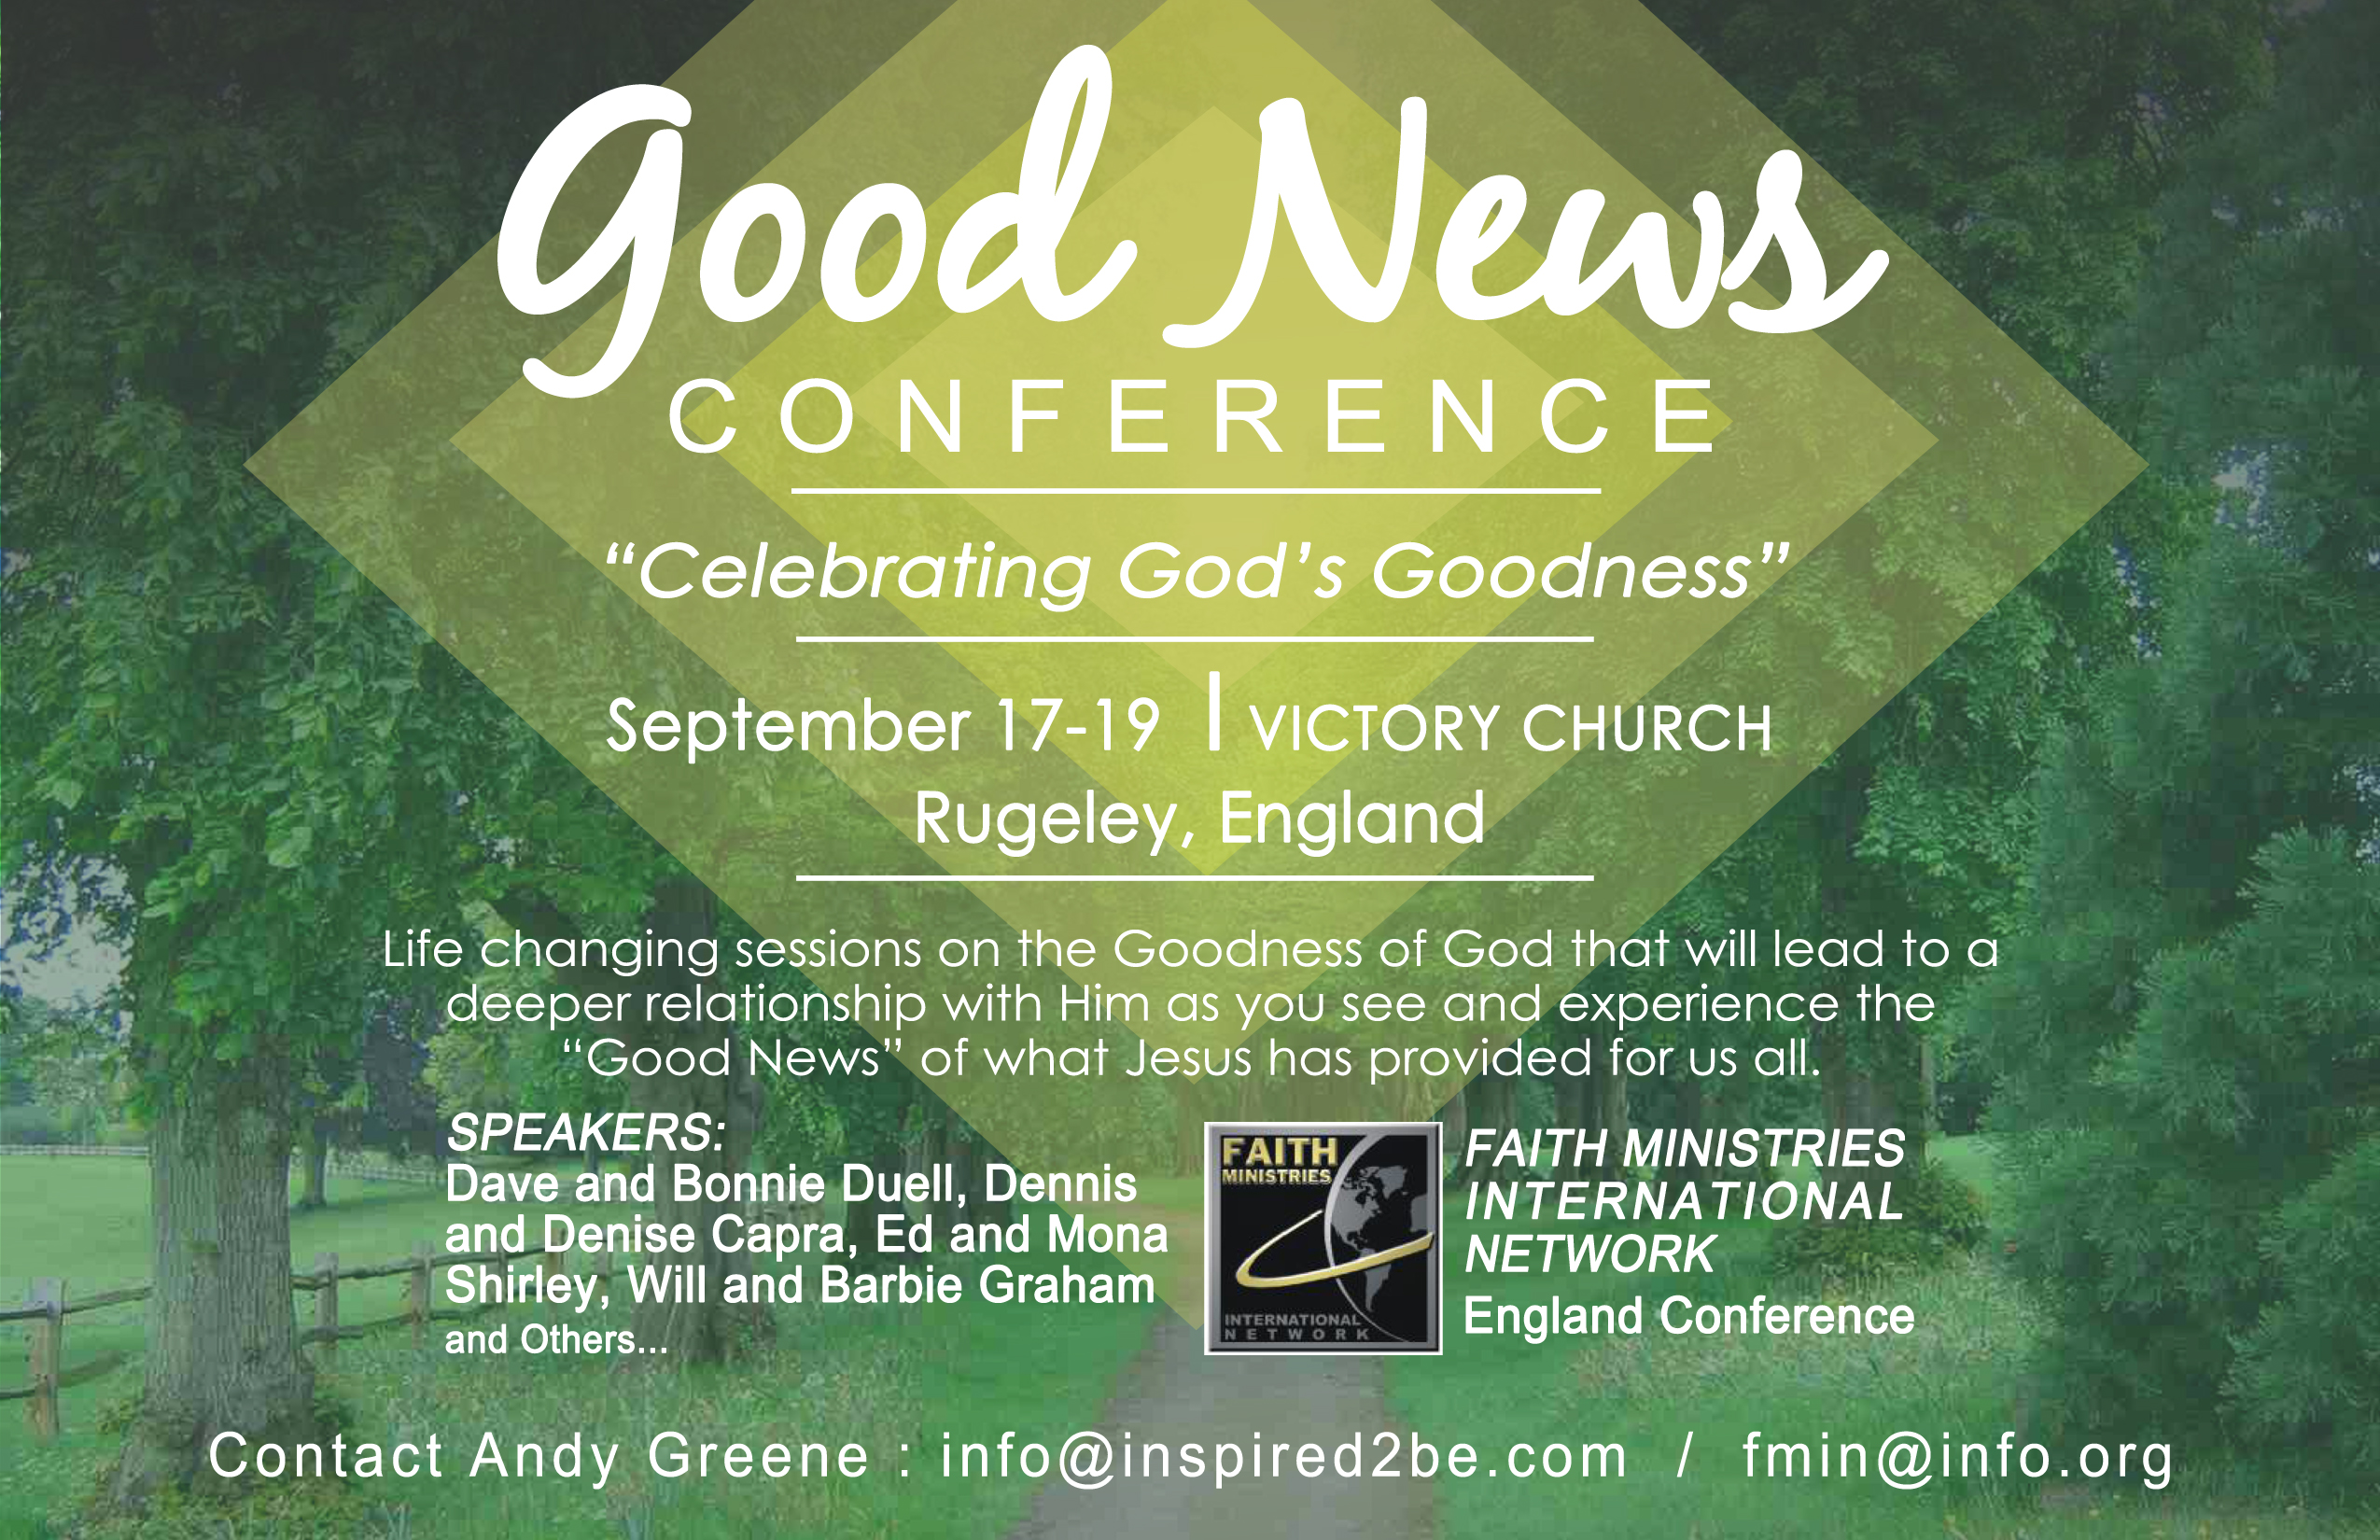 FMIN European Good News Conference: Celebrating God's Goodness